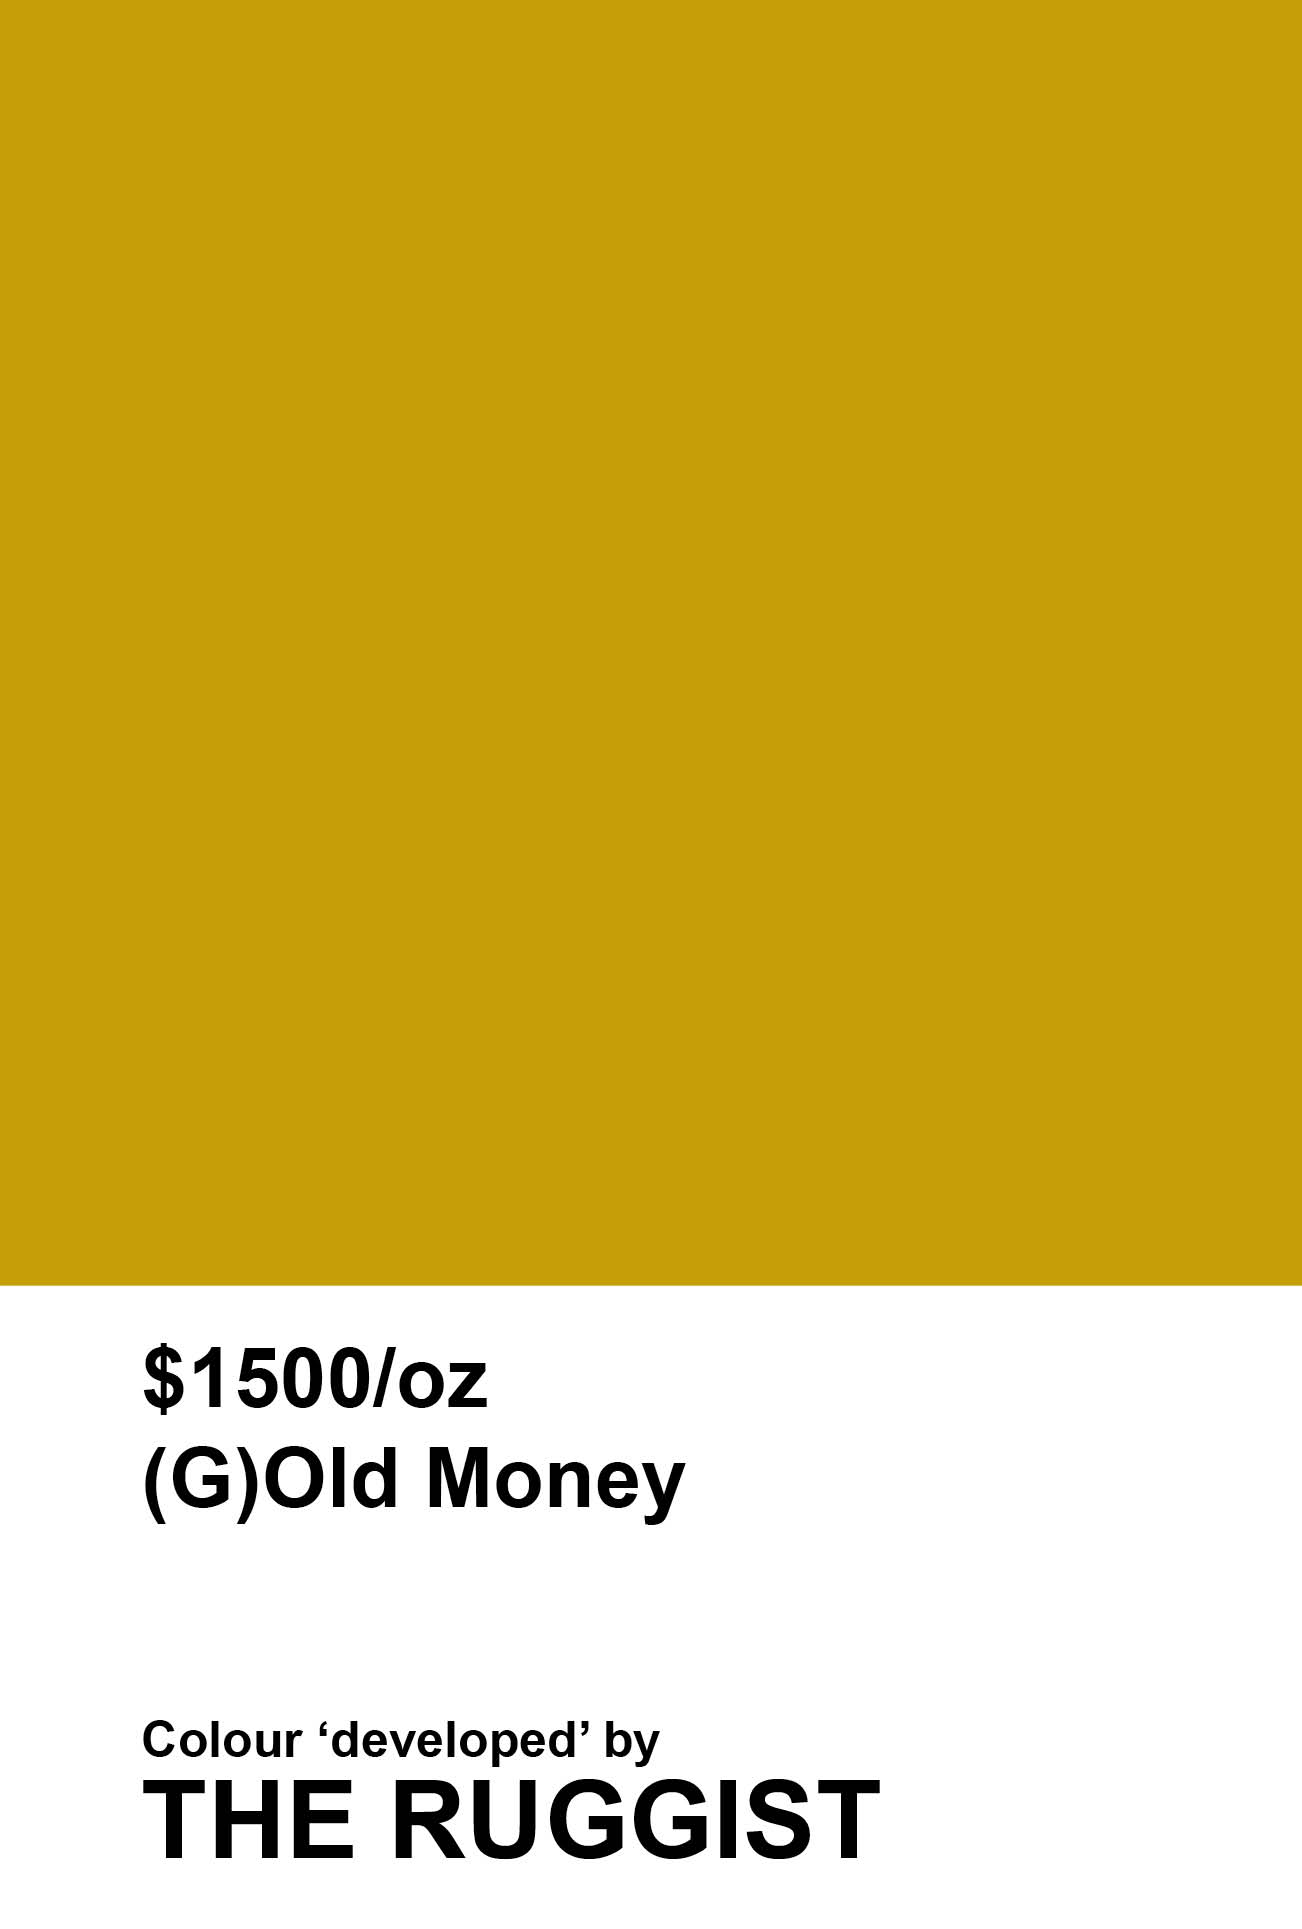 '(G)Old Money' colour reference as 'developed' by The Ruggist. | Image by The Ruggist.